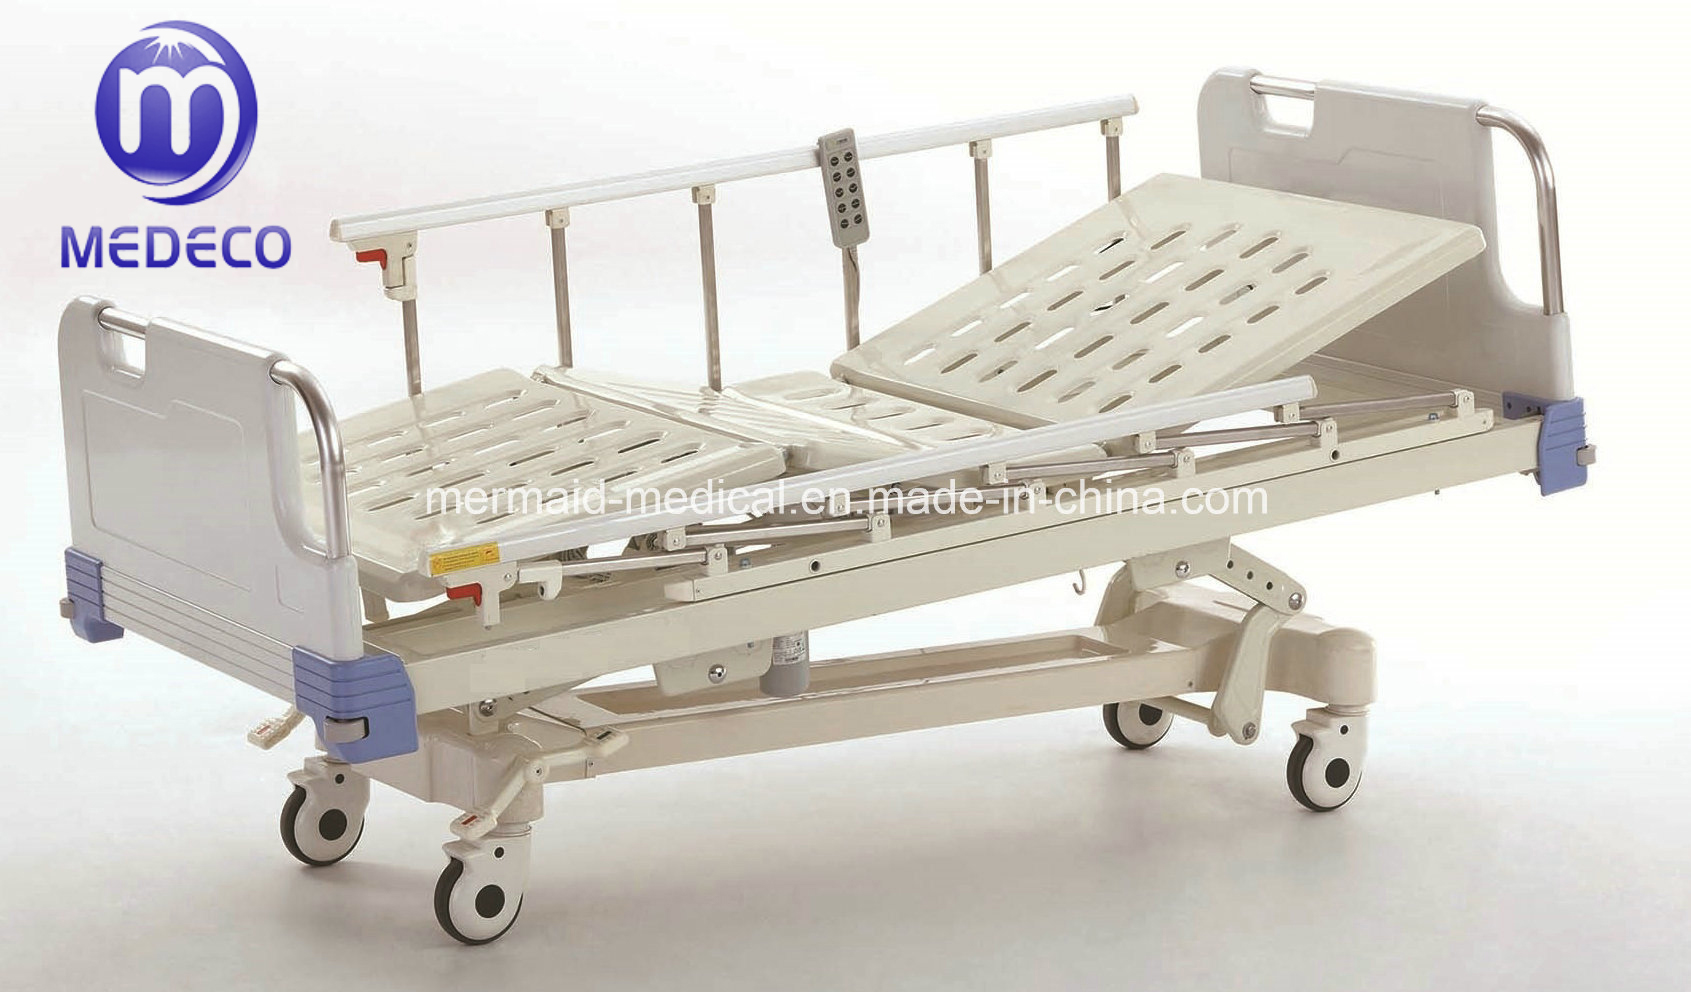 DA-8 Five-function ICU bed